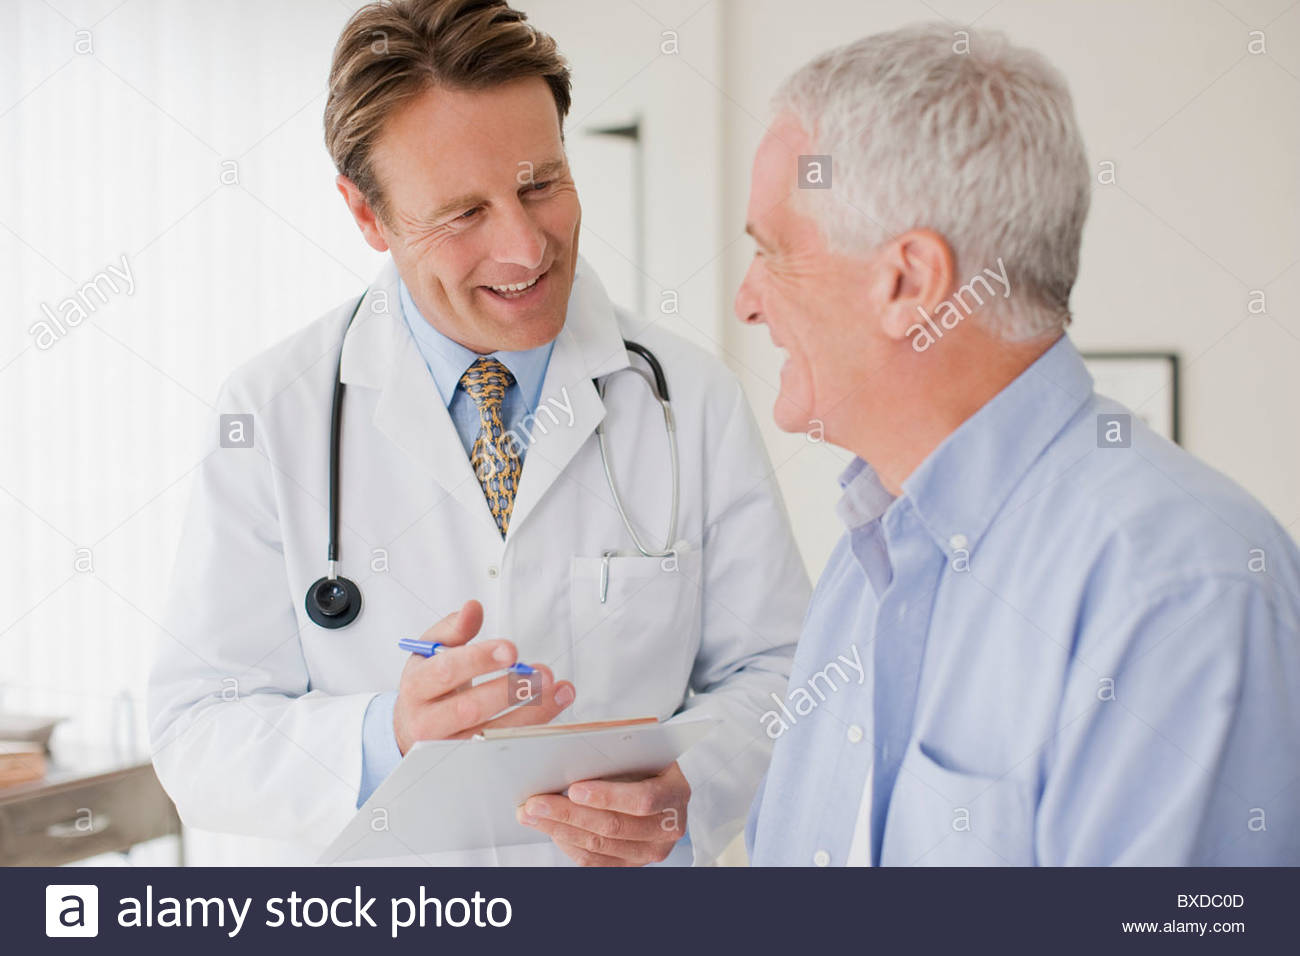 Doctor talking with patient in doctor's office - Stock Image